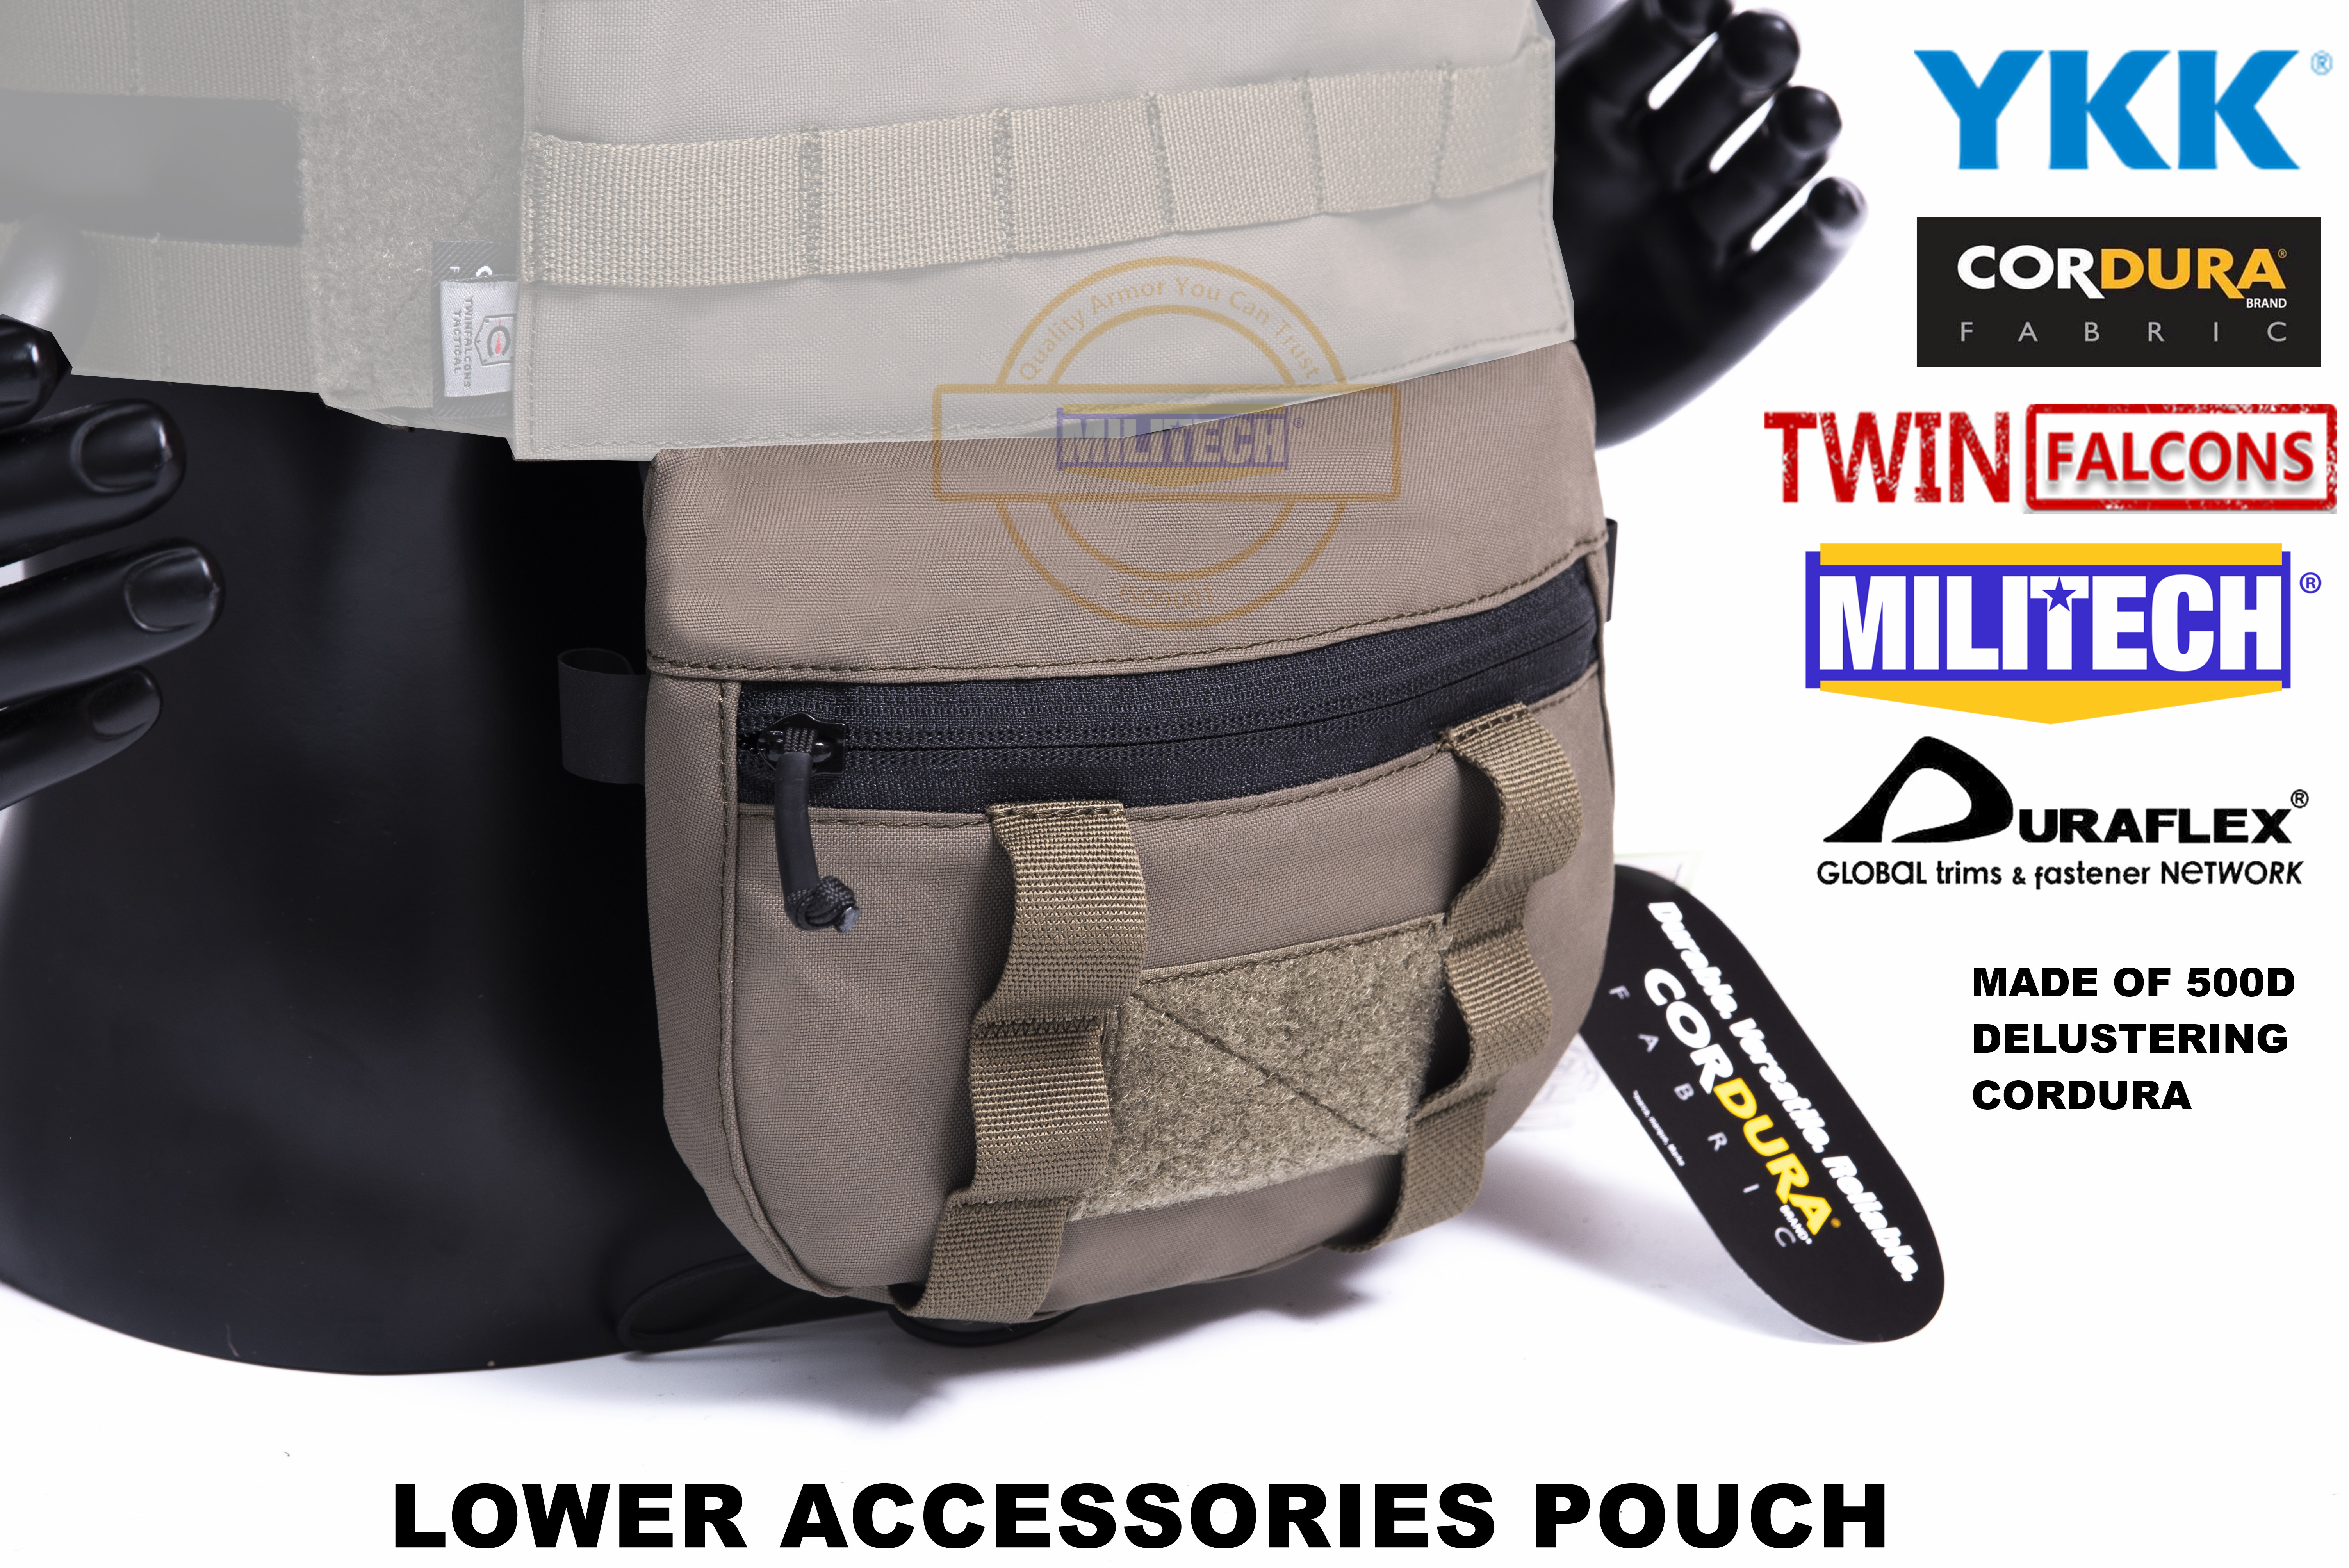 MILITECH TWINFALCONS TW Delustered Cordura Plate Carrier Lower Accessory Pouch Sub Abdominal Pouch Groin Bag